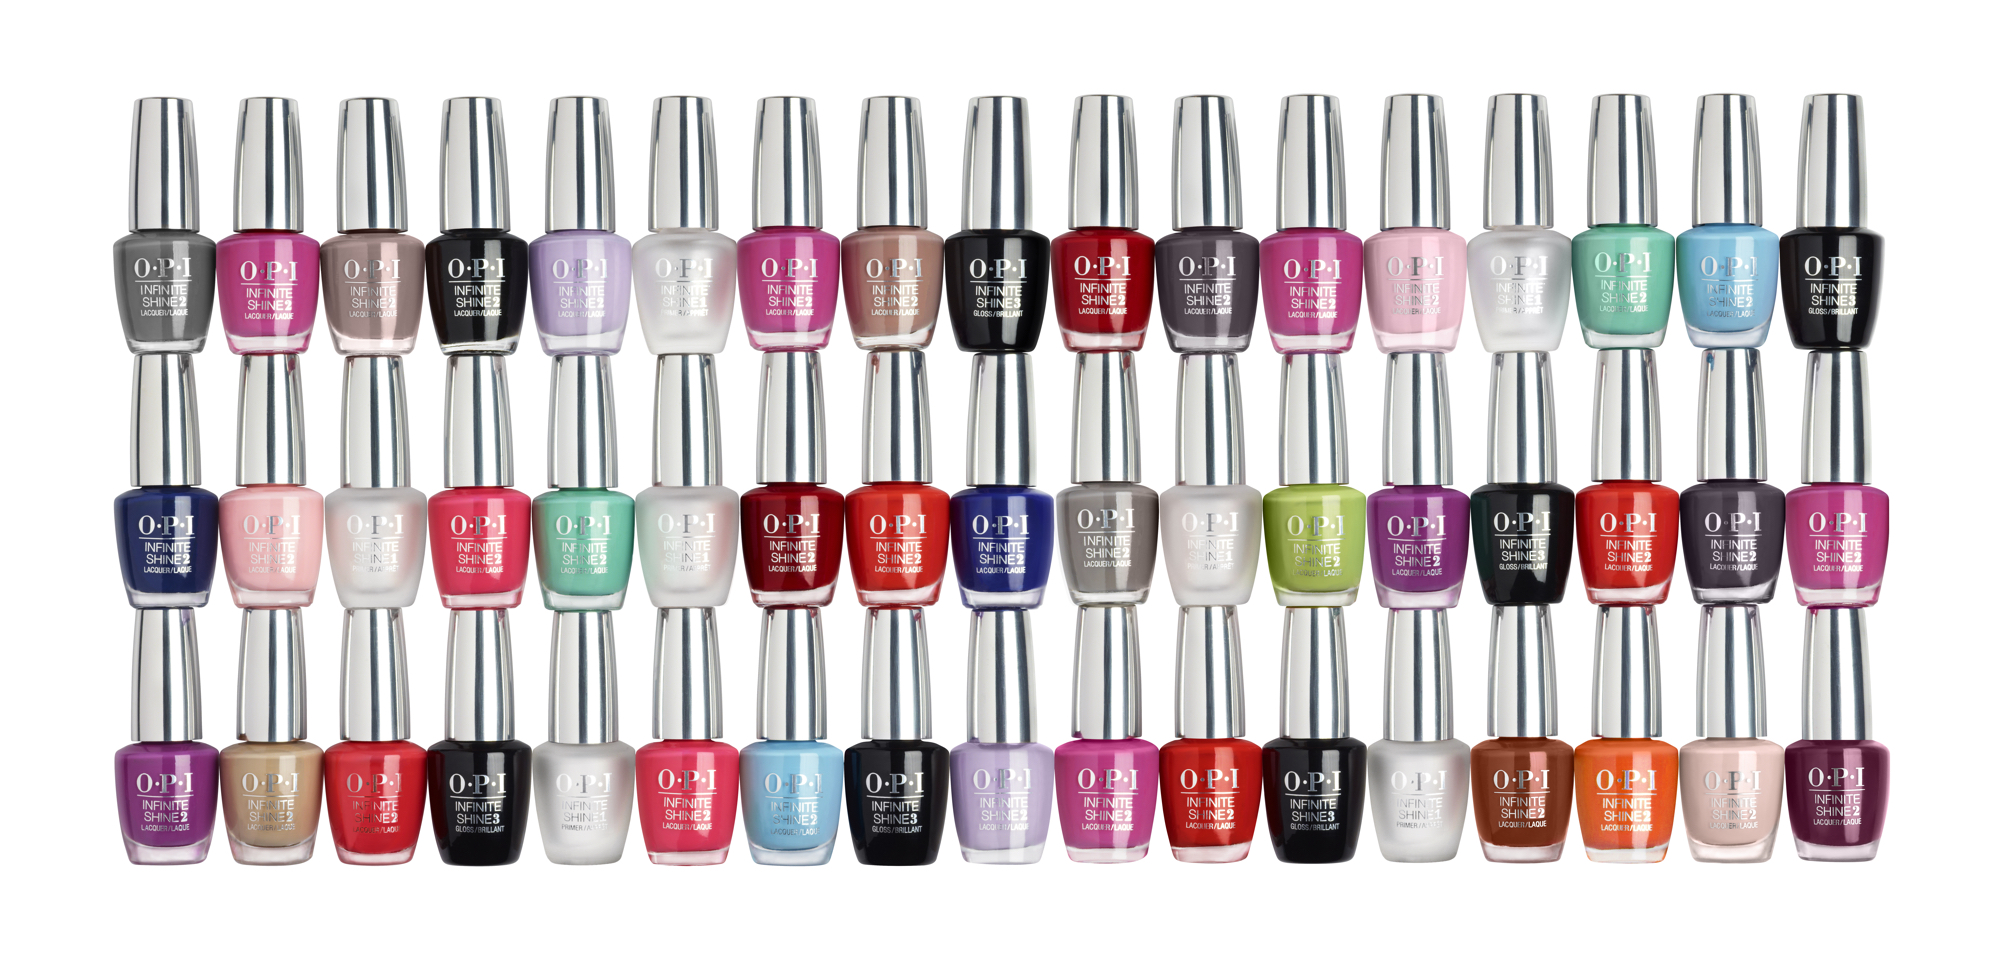 OPI Infinite Shine Gel Effects Lacquer System Press Release - The ...